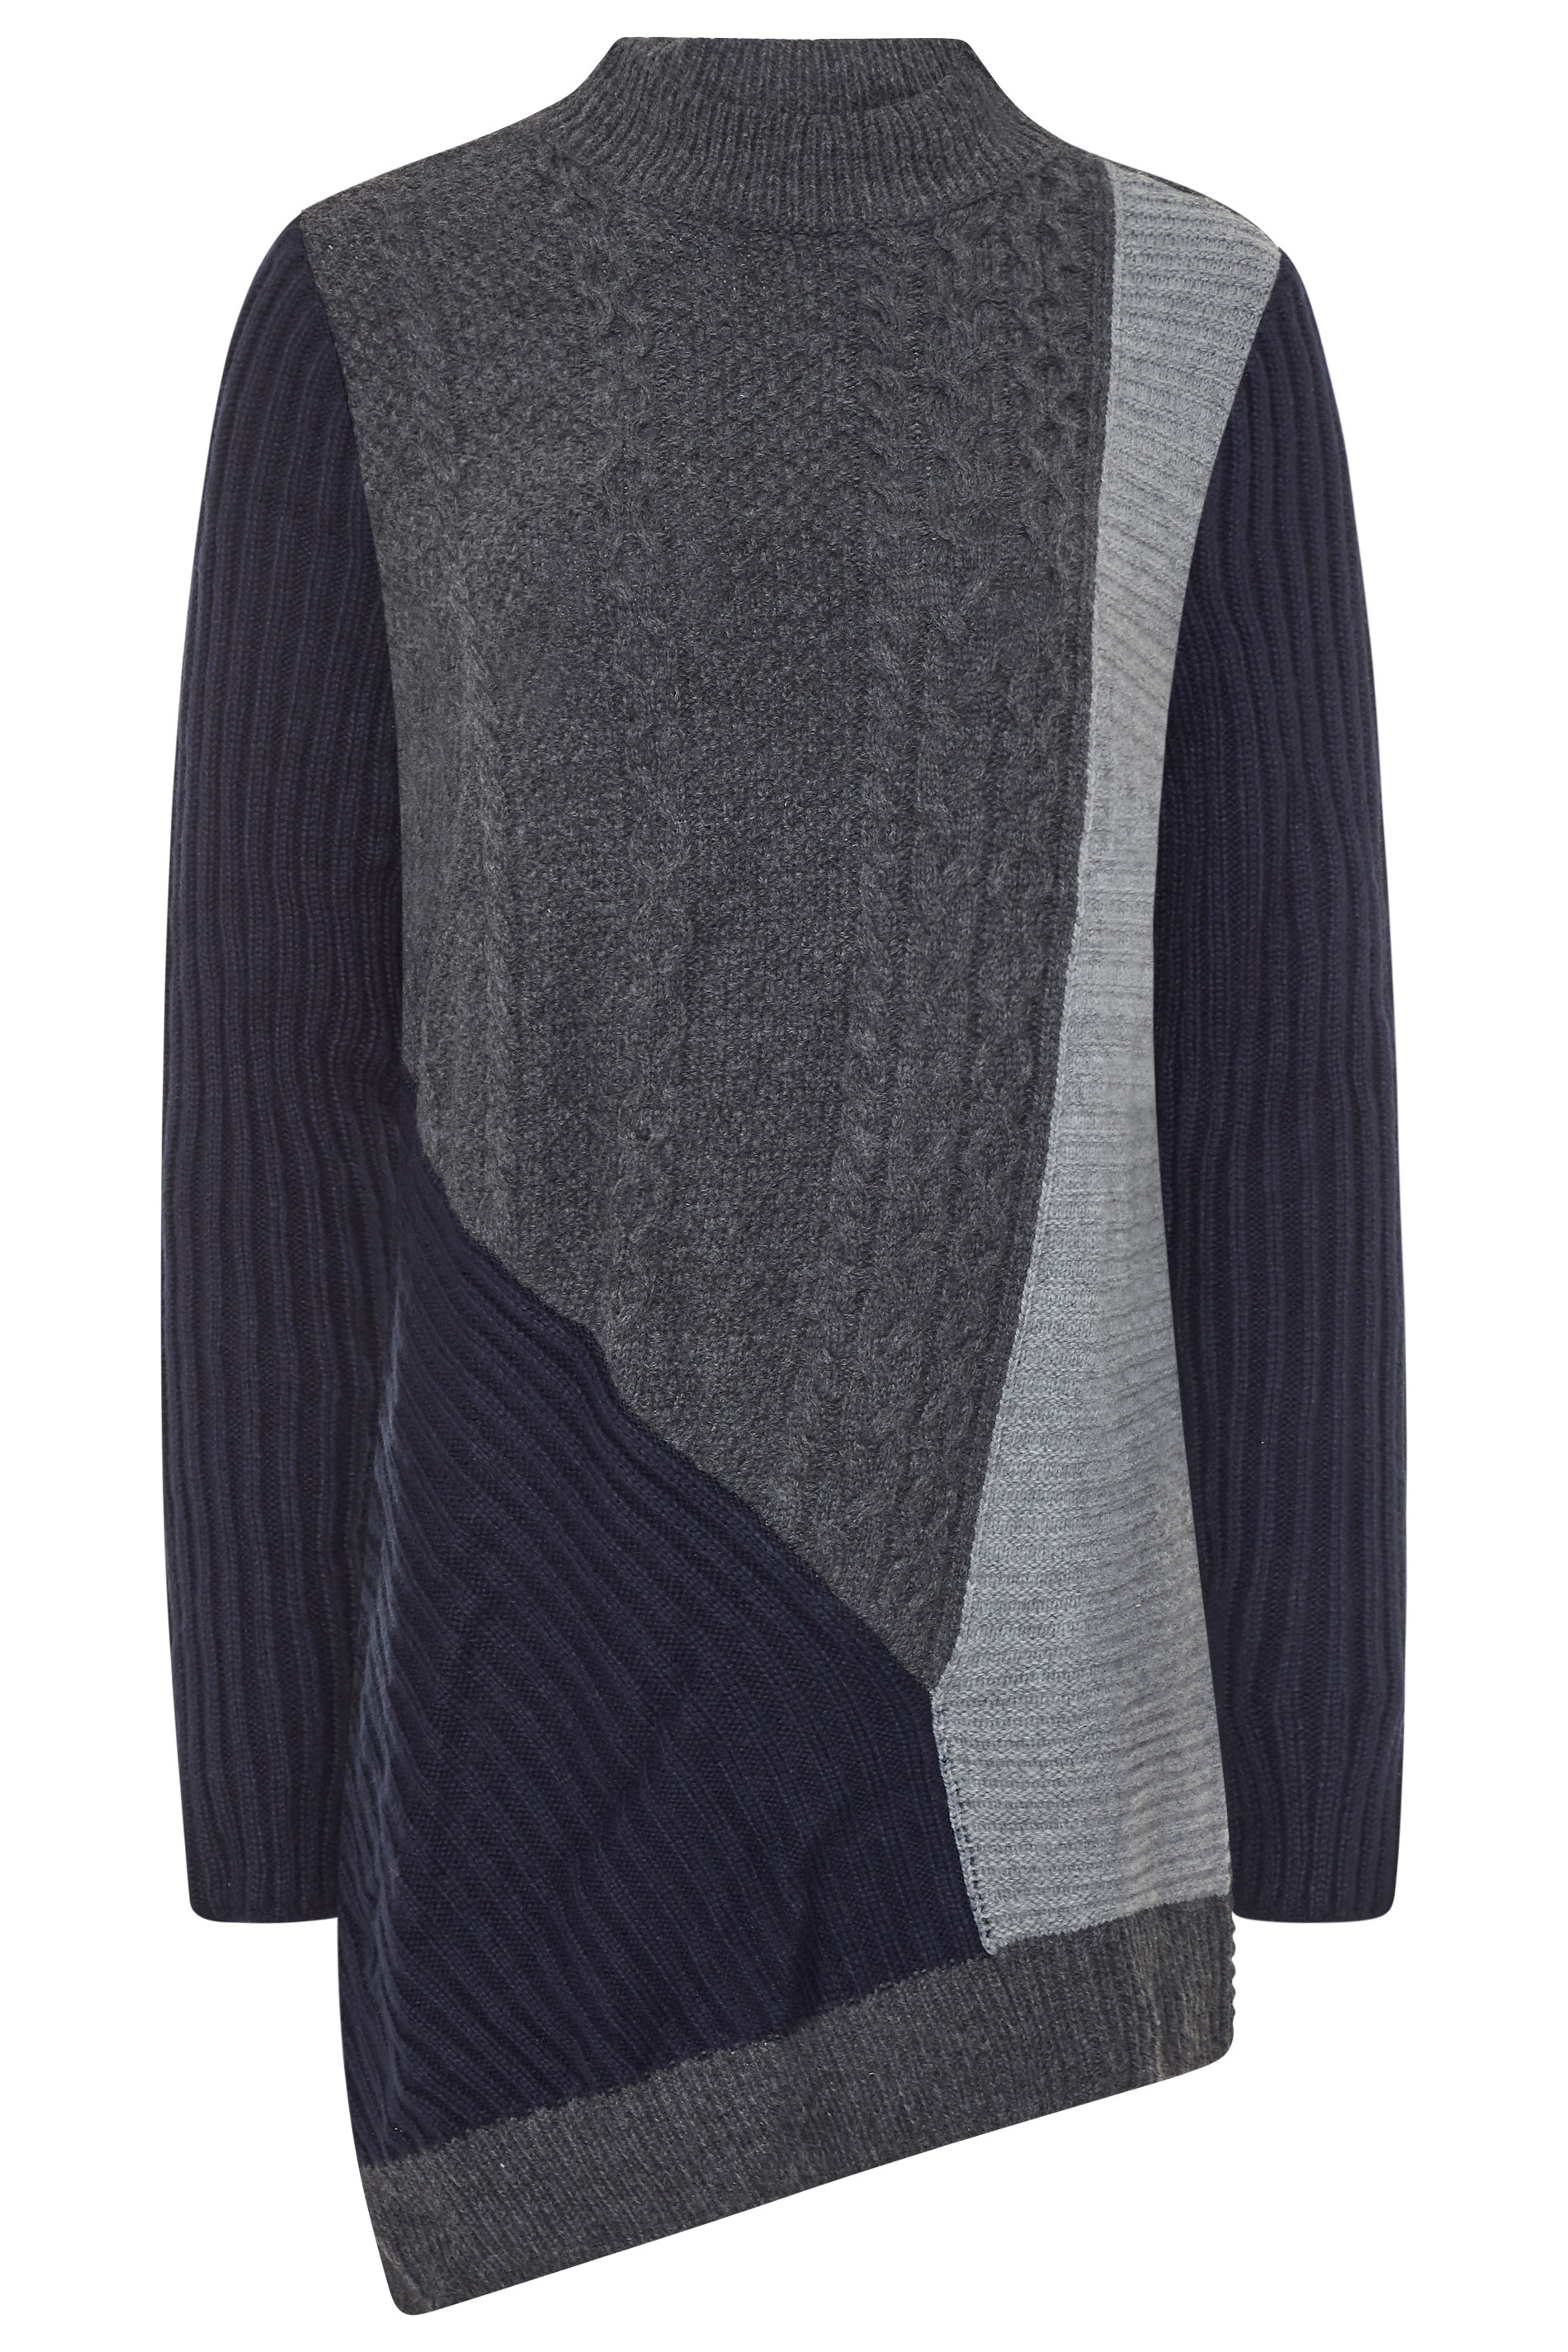 CURATD. x LTS Grey Colour Block Knitted Tunic